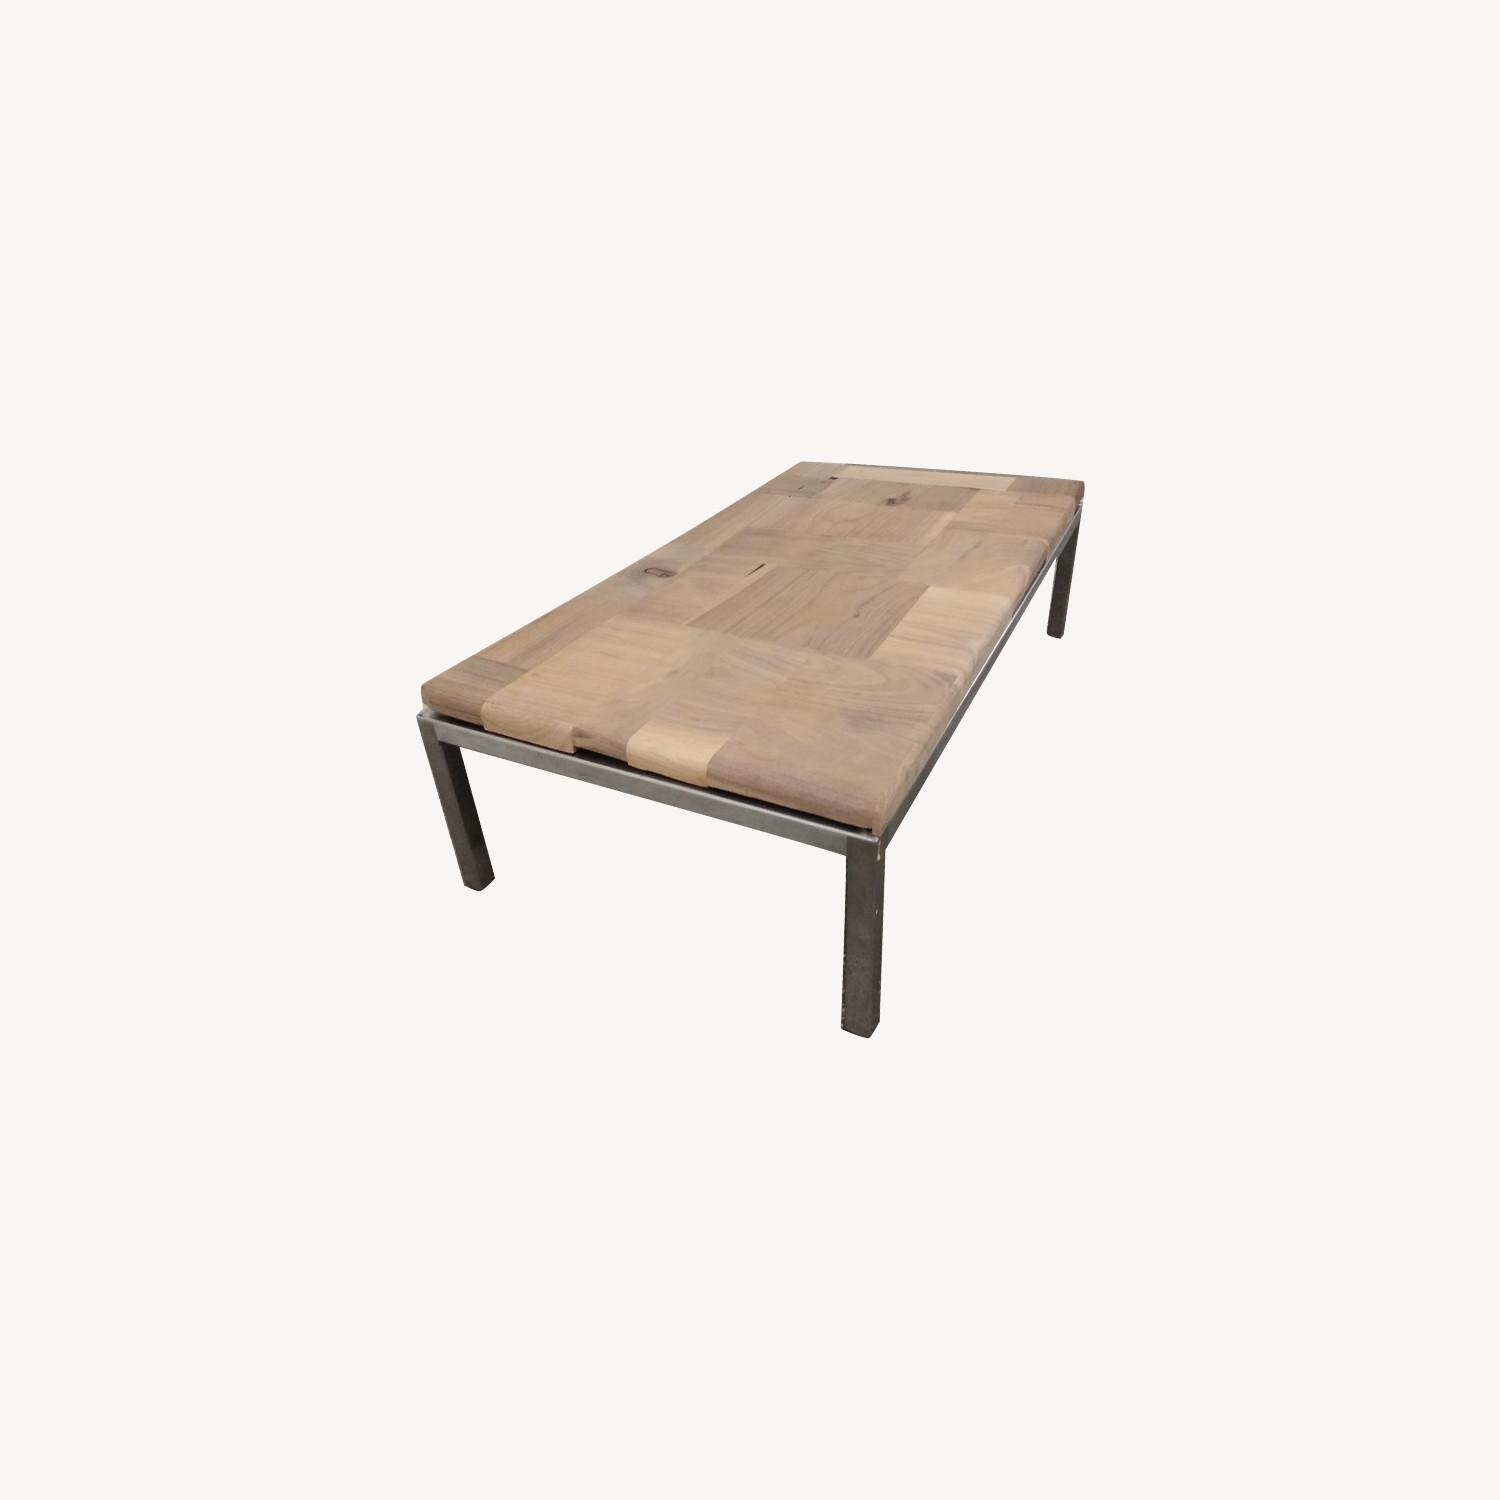 Restoration Hardware Solid Walnut Mosaic Coffee Table - image-0